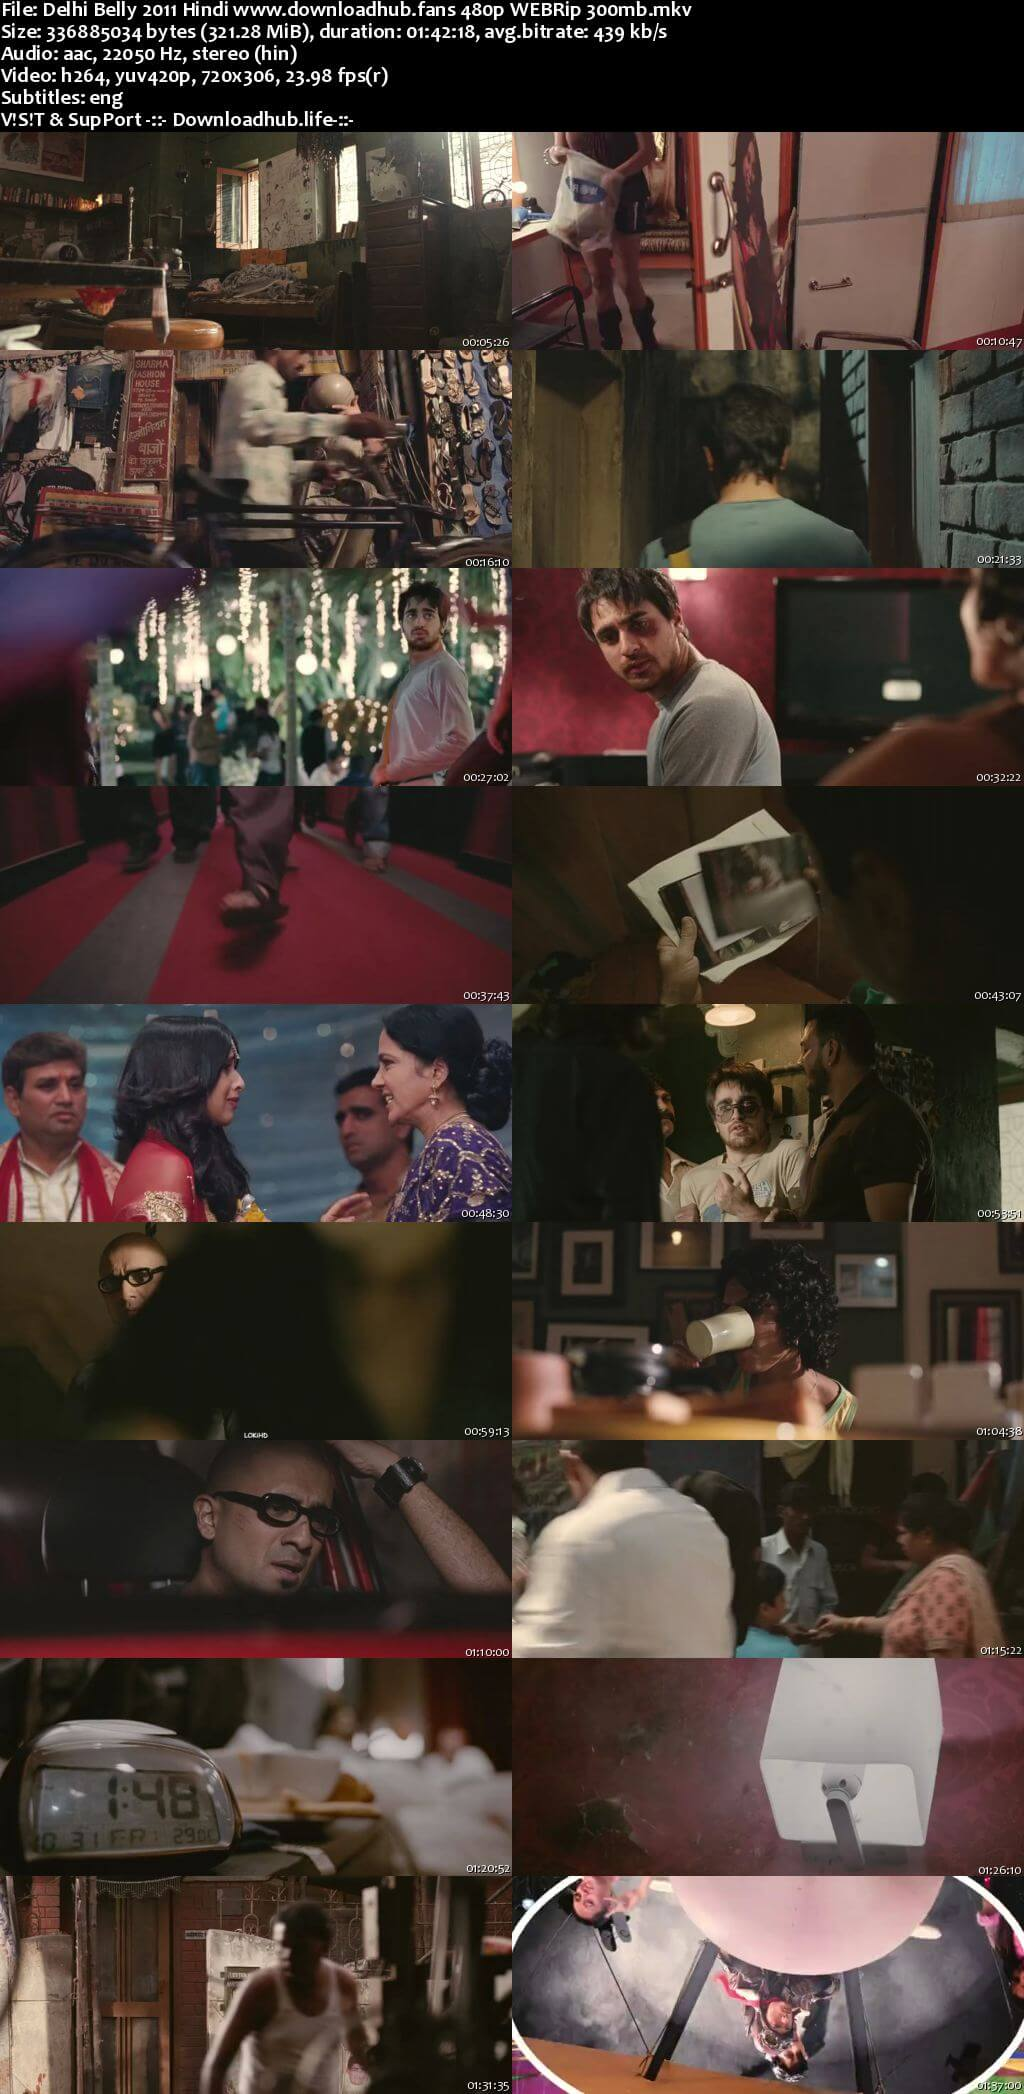 Delhi Belly 2011 Hindi 300MB HDRip 480p ESubs